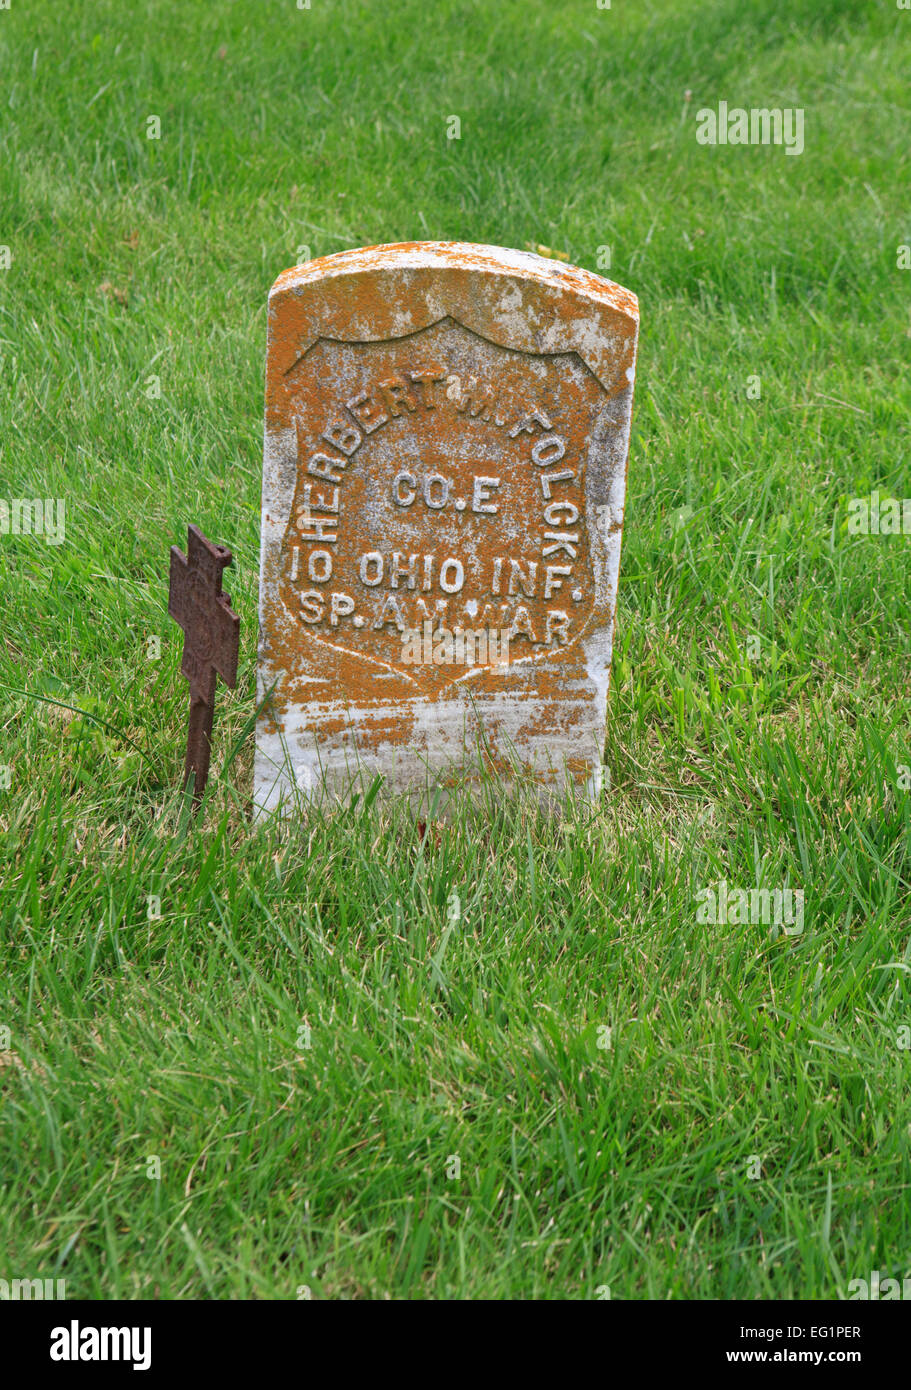 Tombstone of  veteran of the Spanish-American war. - Stock Image